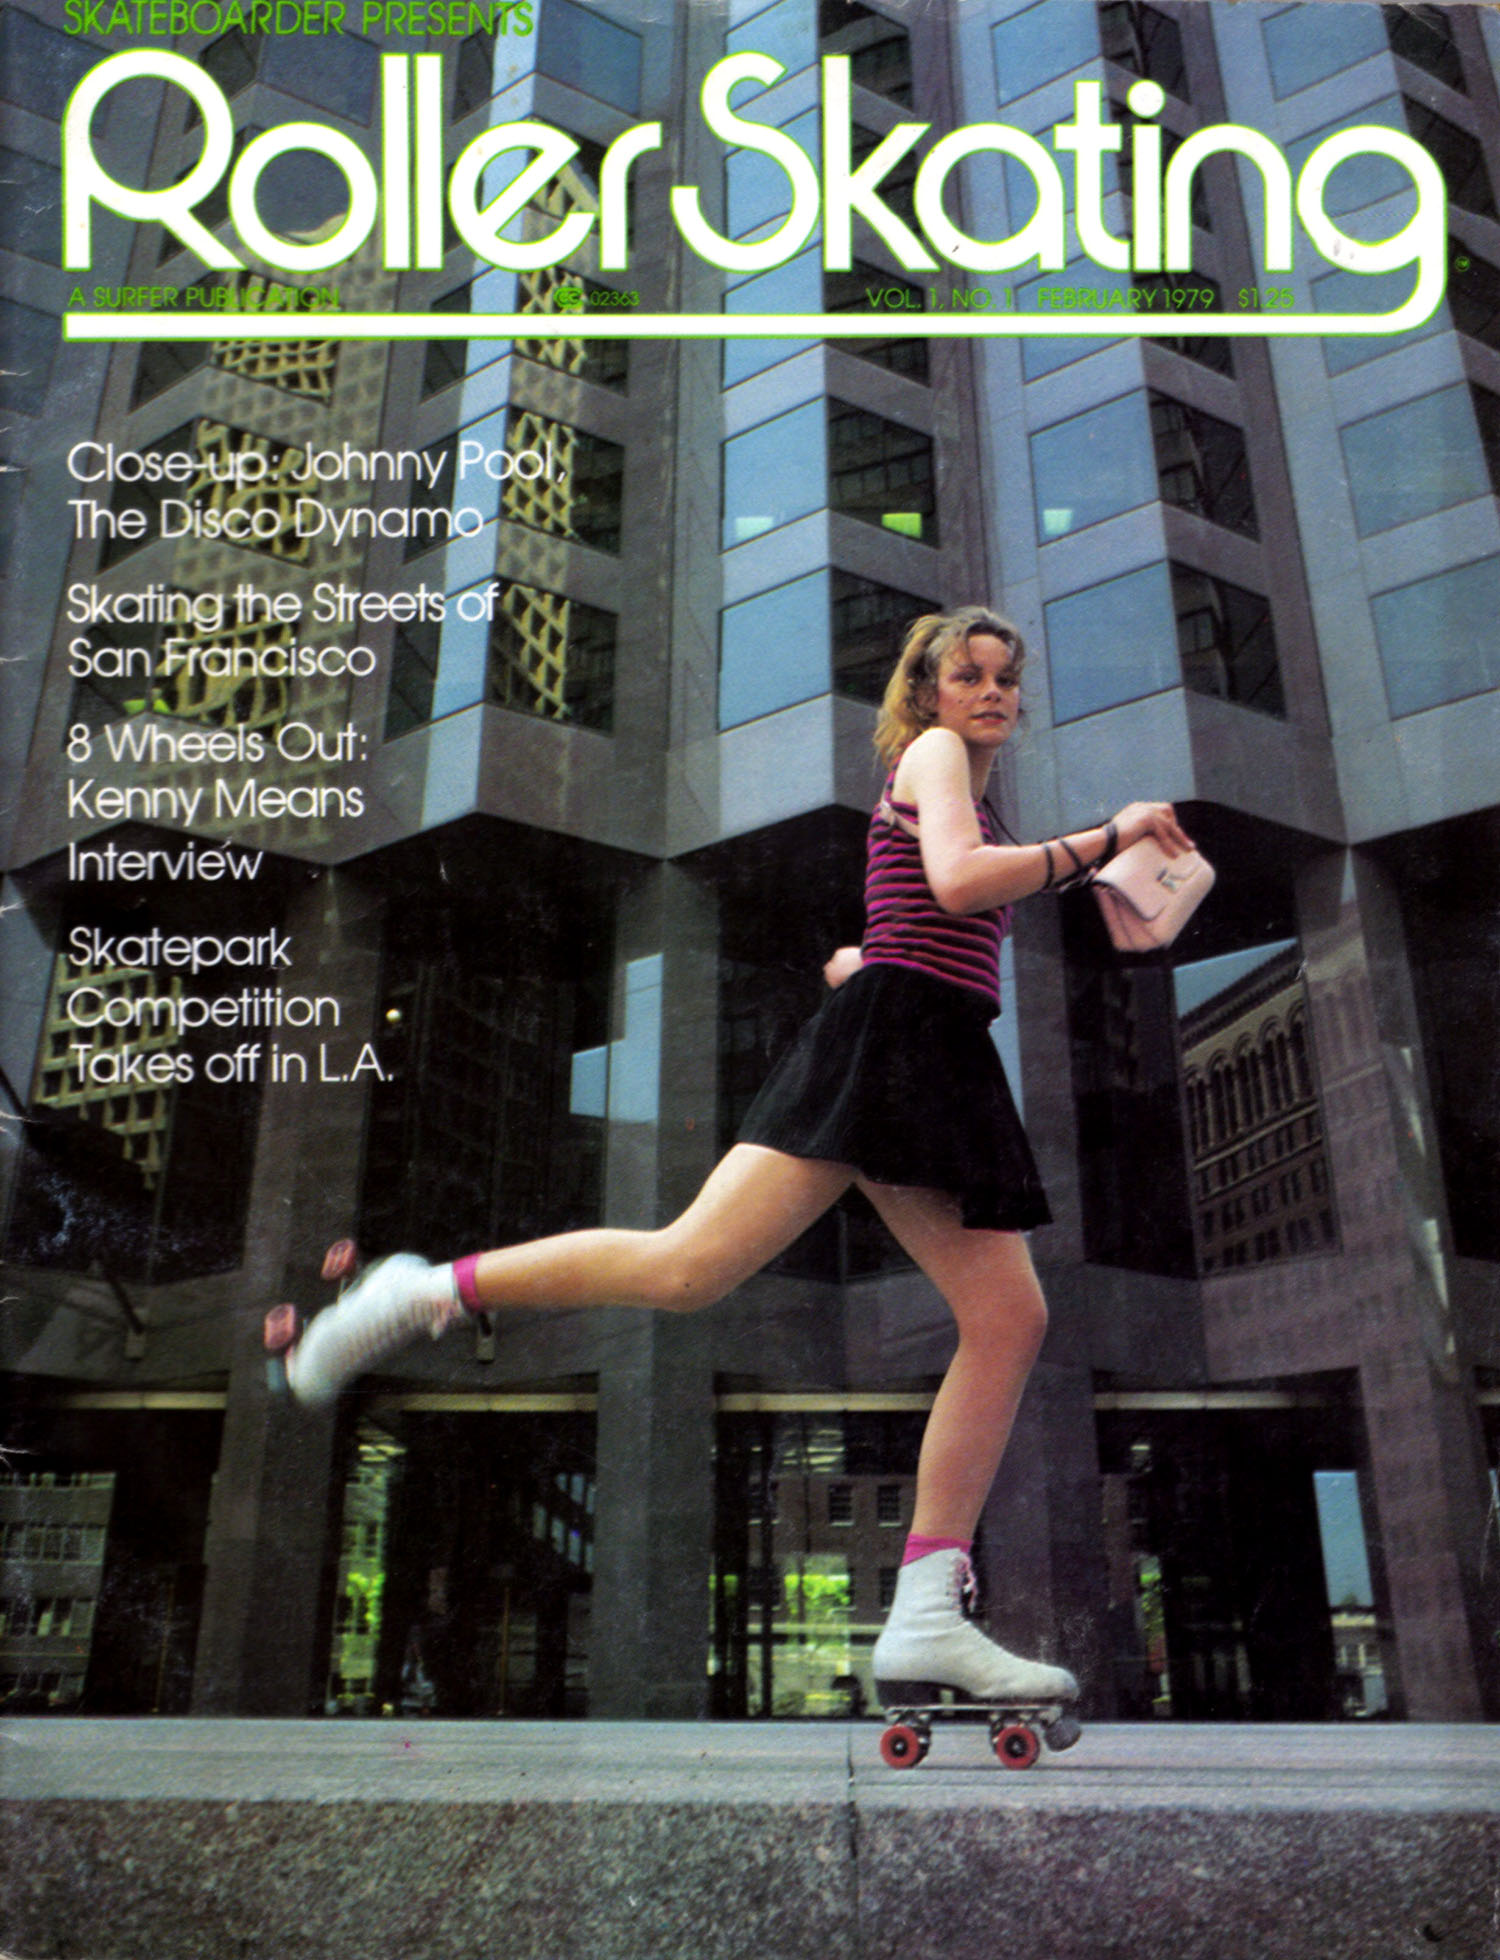 roller skating magazine cover (4)